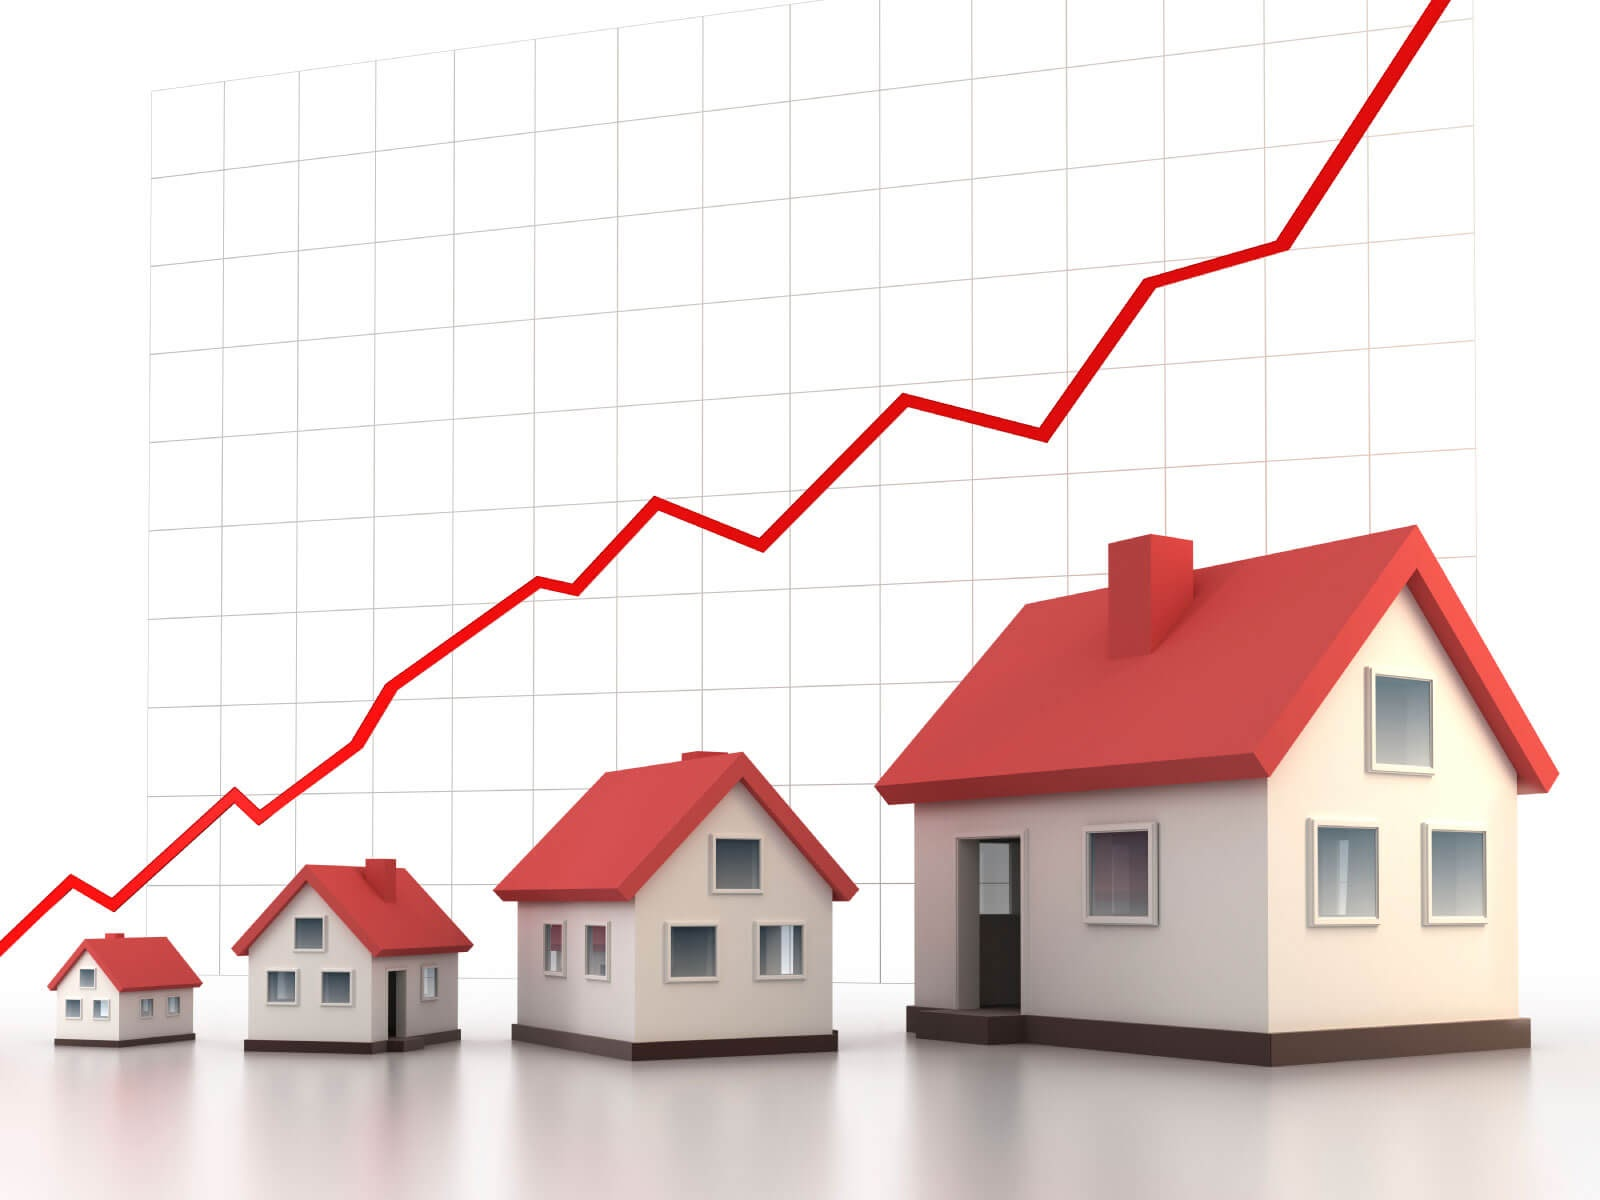 4 houses with a graph in the back and a line chart increasing over time